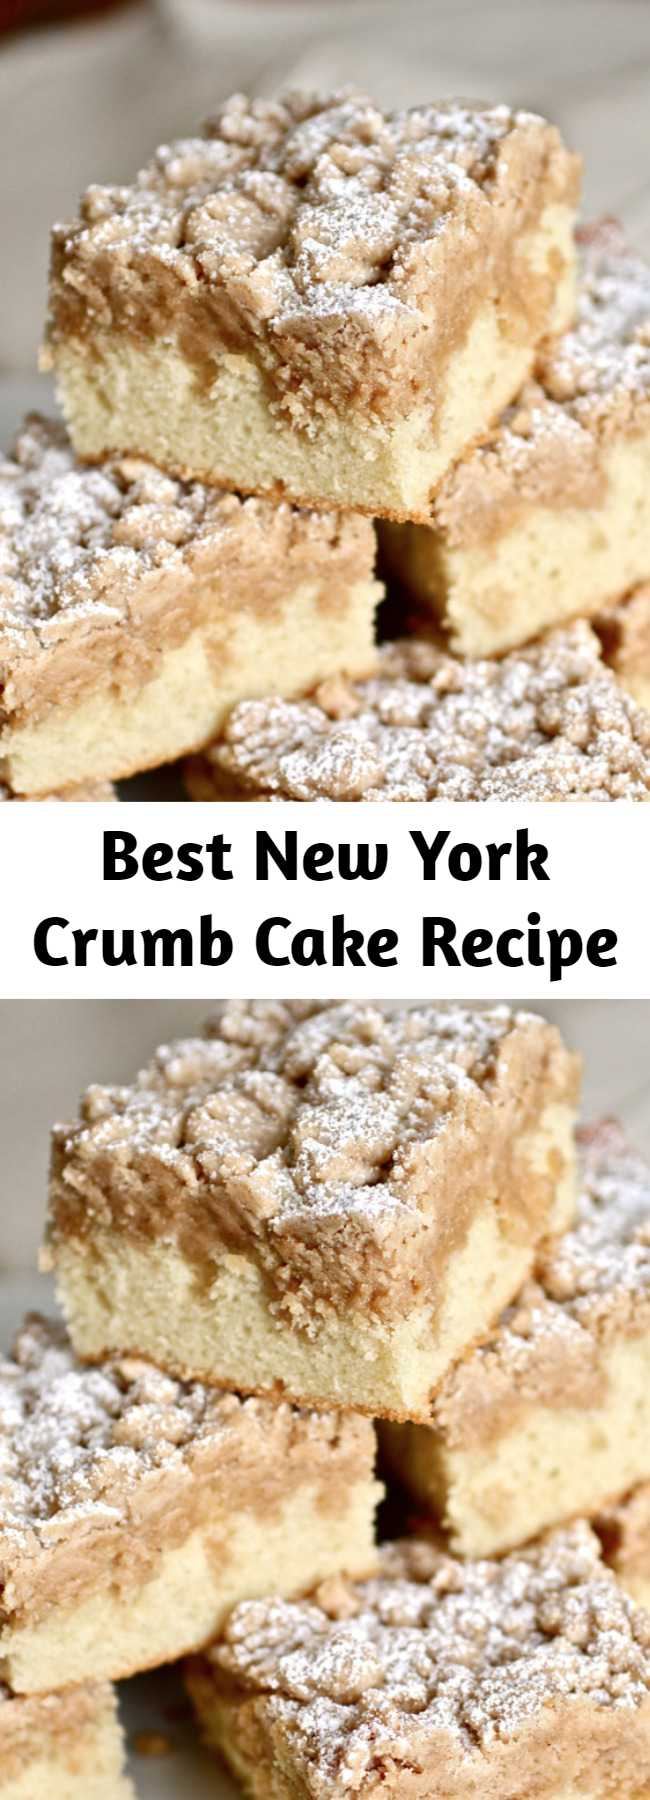 Best New York Crumb Cake Recipe - This New York crumb cake is the absolute BEST recipe out there! It even beats out the Entemann's Ultimate Crumb Cake, according to discerning New Yorkers! With big crumbs and soft, buttery cake, this crumb cake will become an old family favorite in no time.